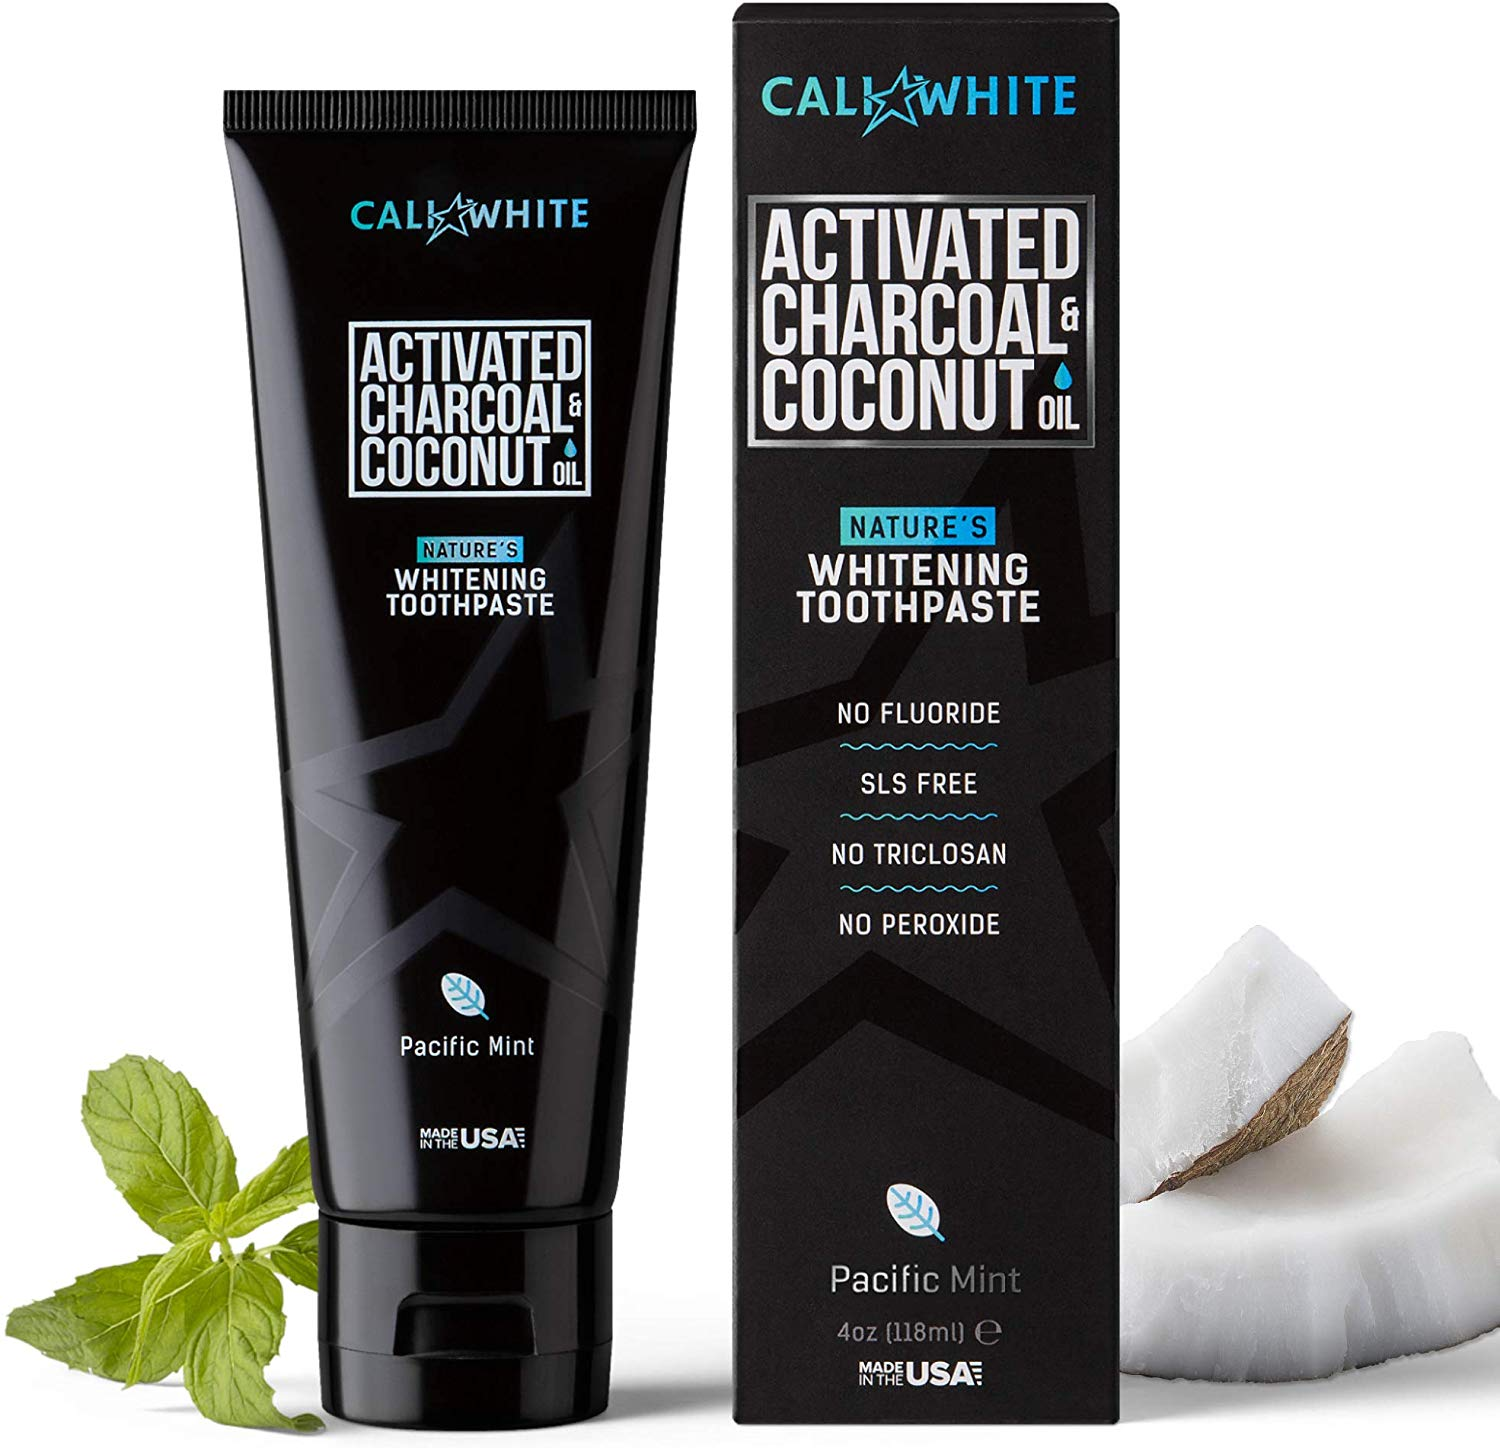 Cali White ACTIVATED CHARCOAL & ORGANIC COCONUT OIL TEETH WHITENING TOOTHPASTE,